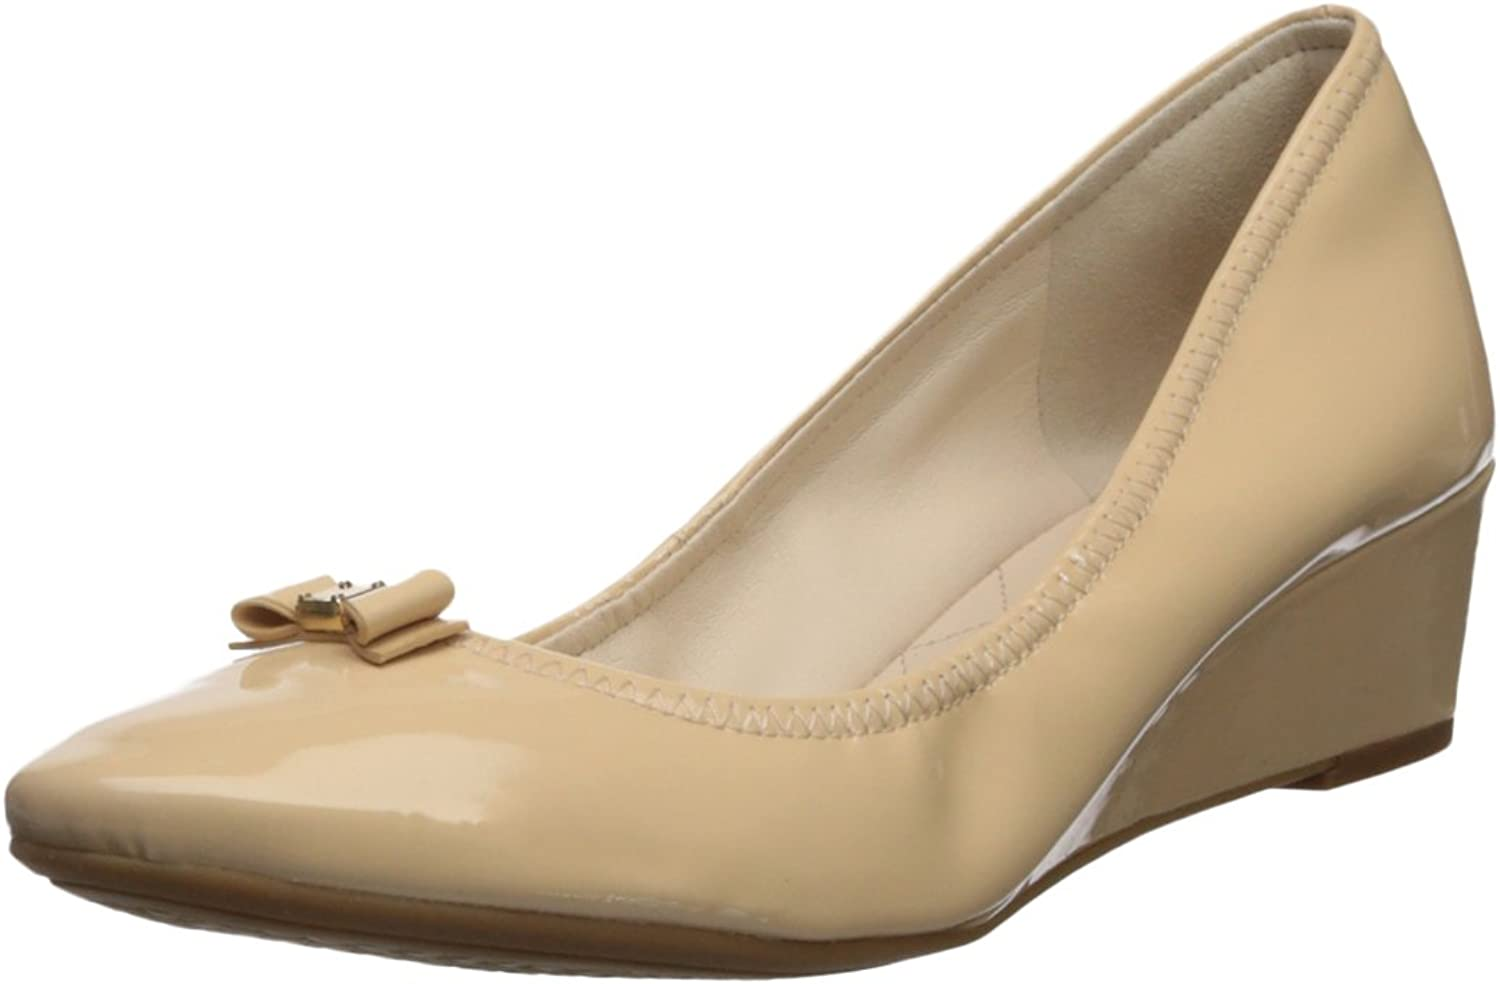 Cole Haan Womens Tali Bow Mini Wedge Pumps